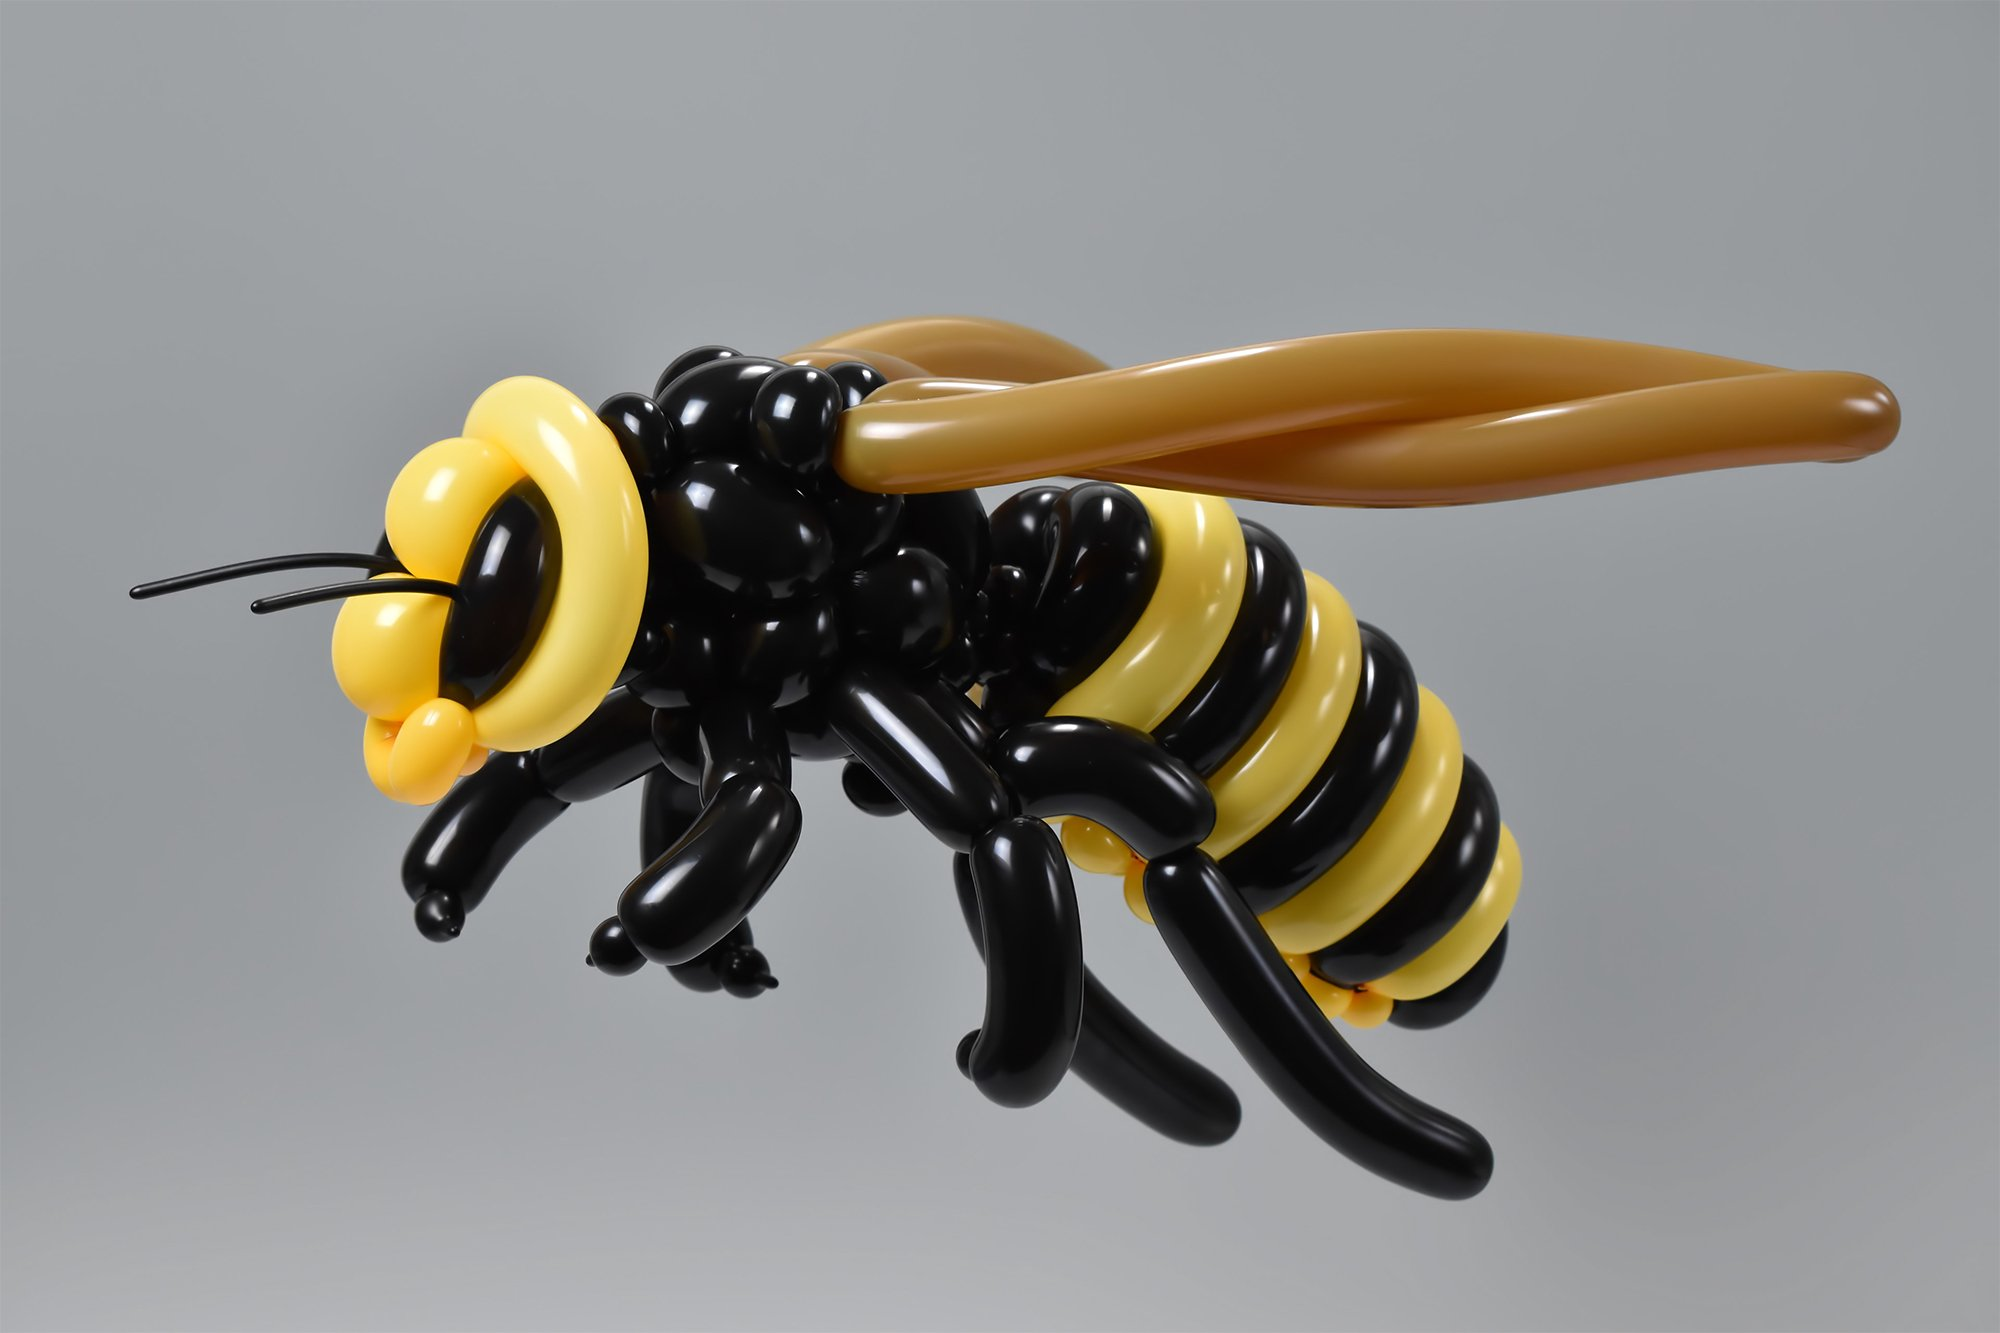 Complex Creatures Crafted Out of Balloons by Masayoshi Matsumoto